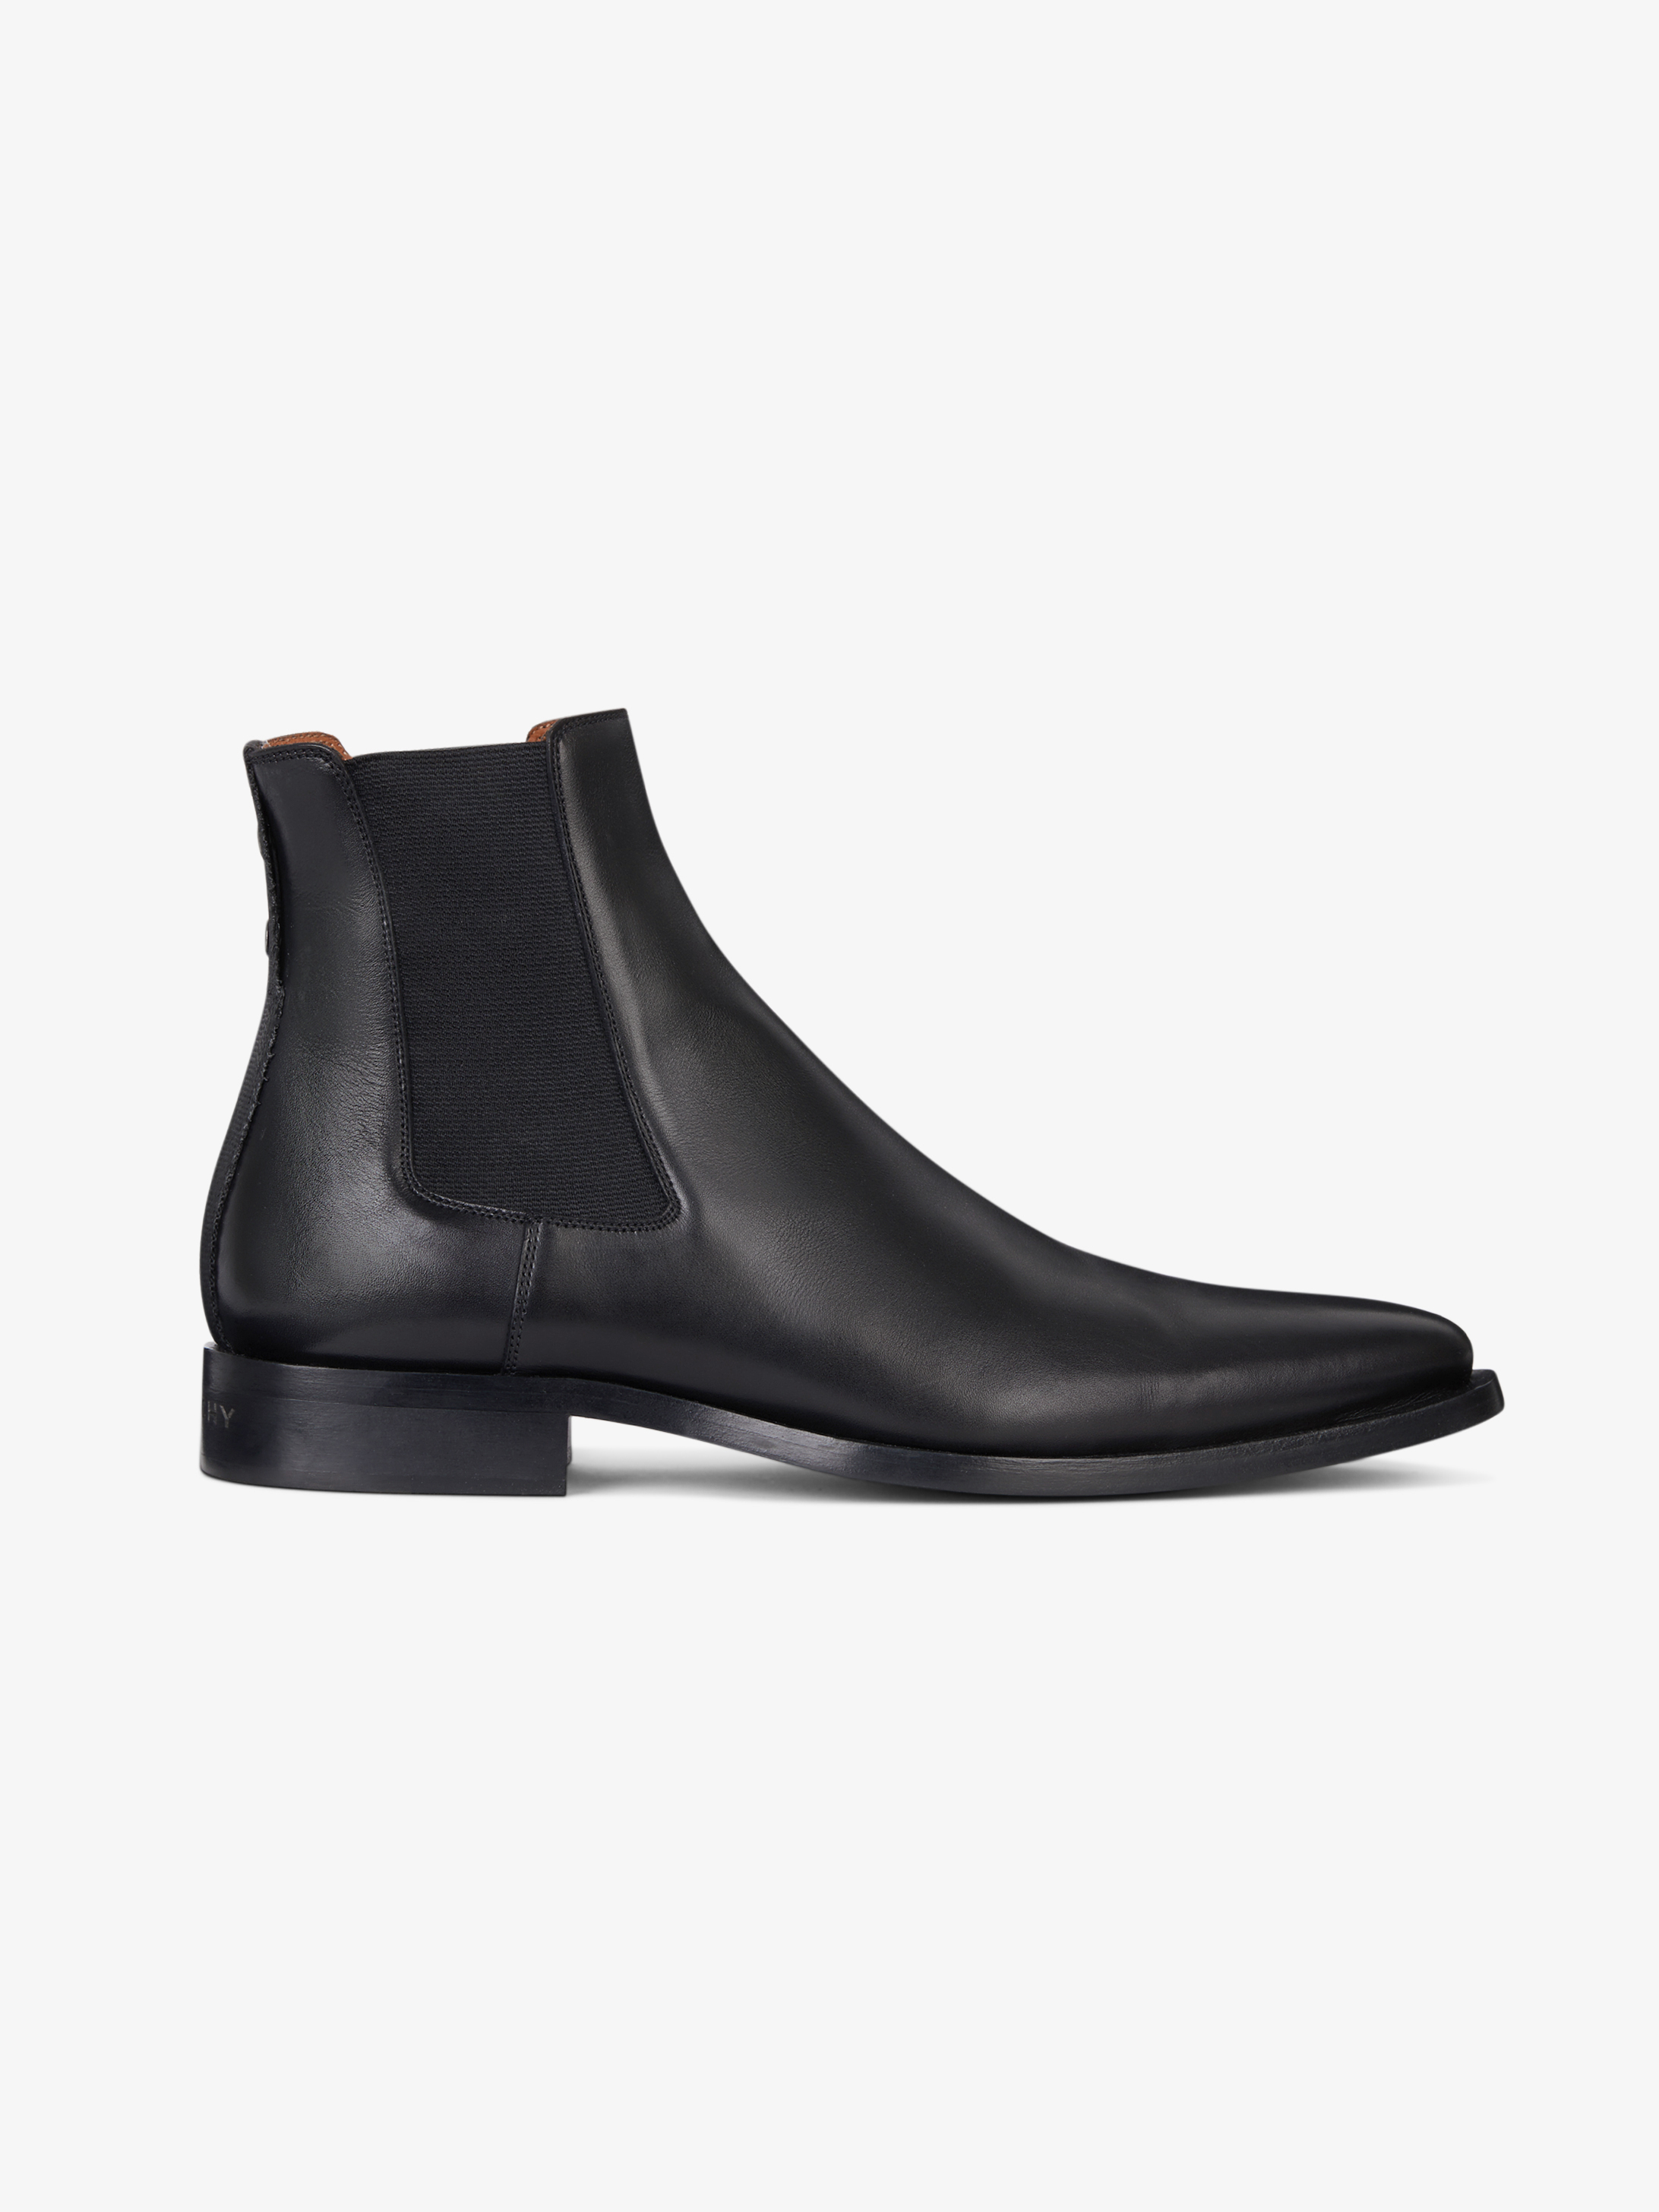 Chelsea pointed-toe boots in smooth leather